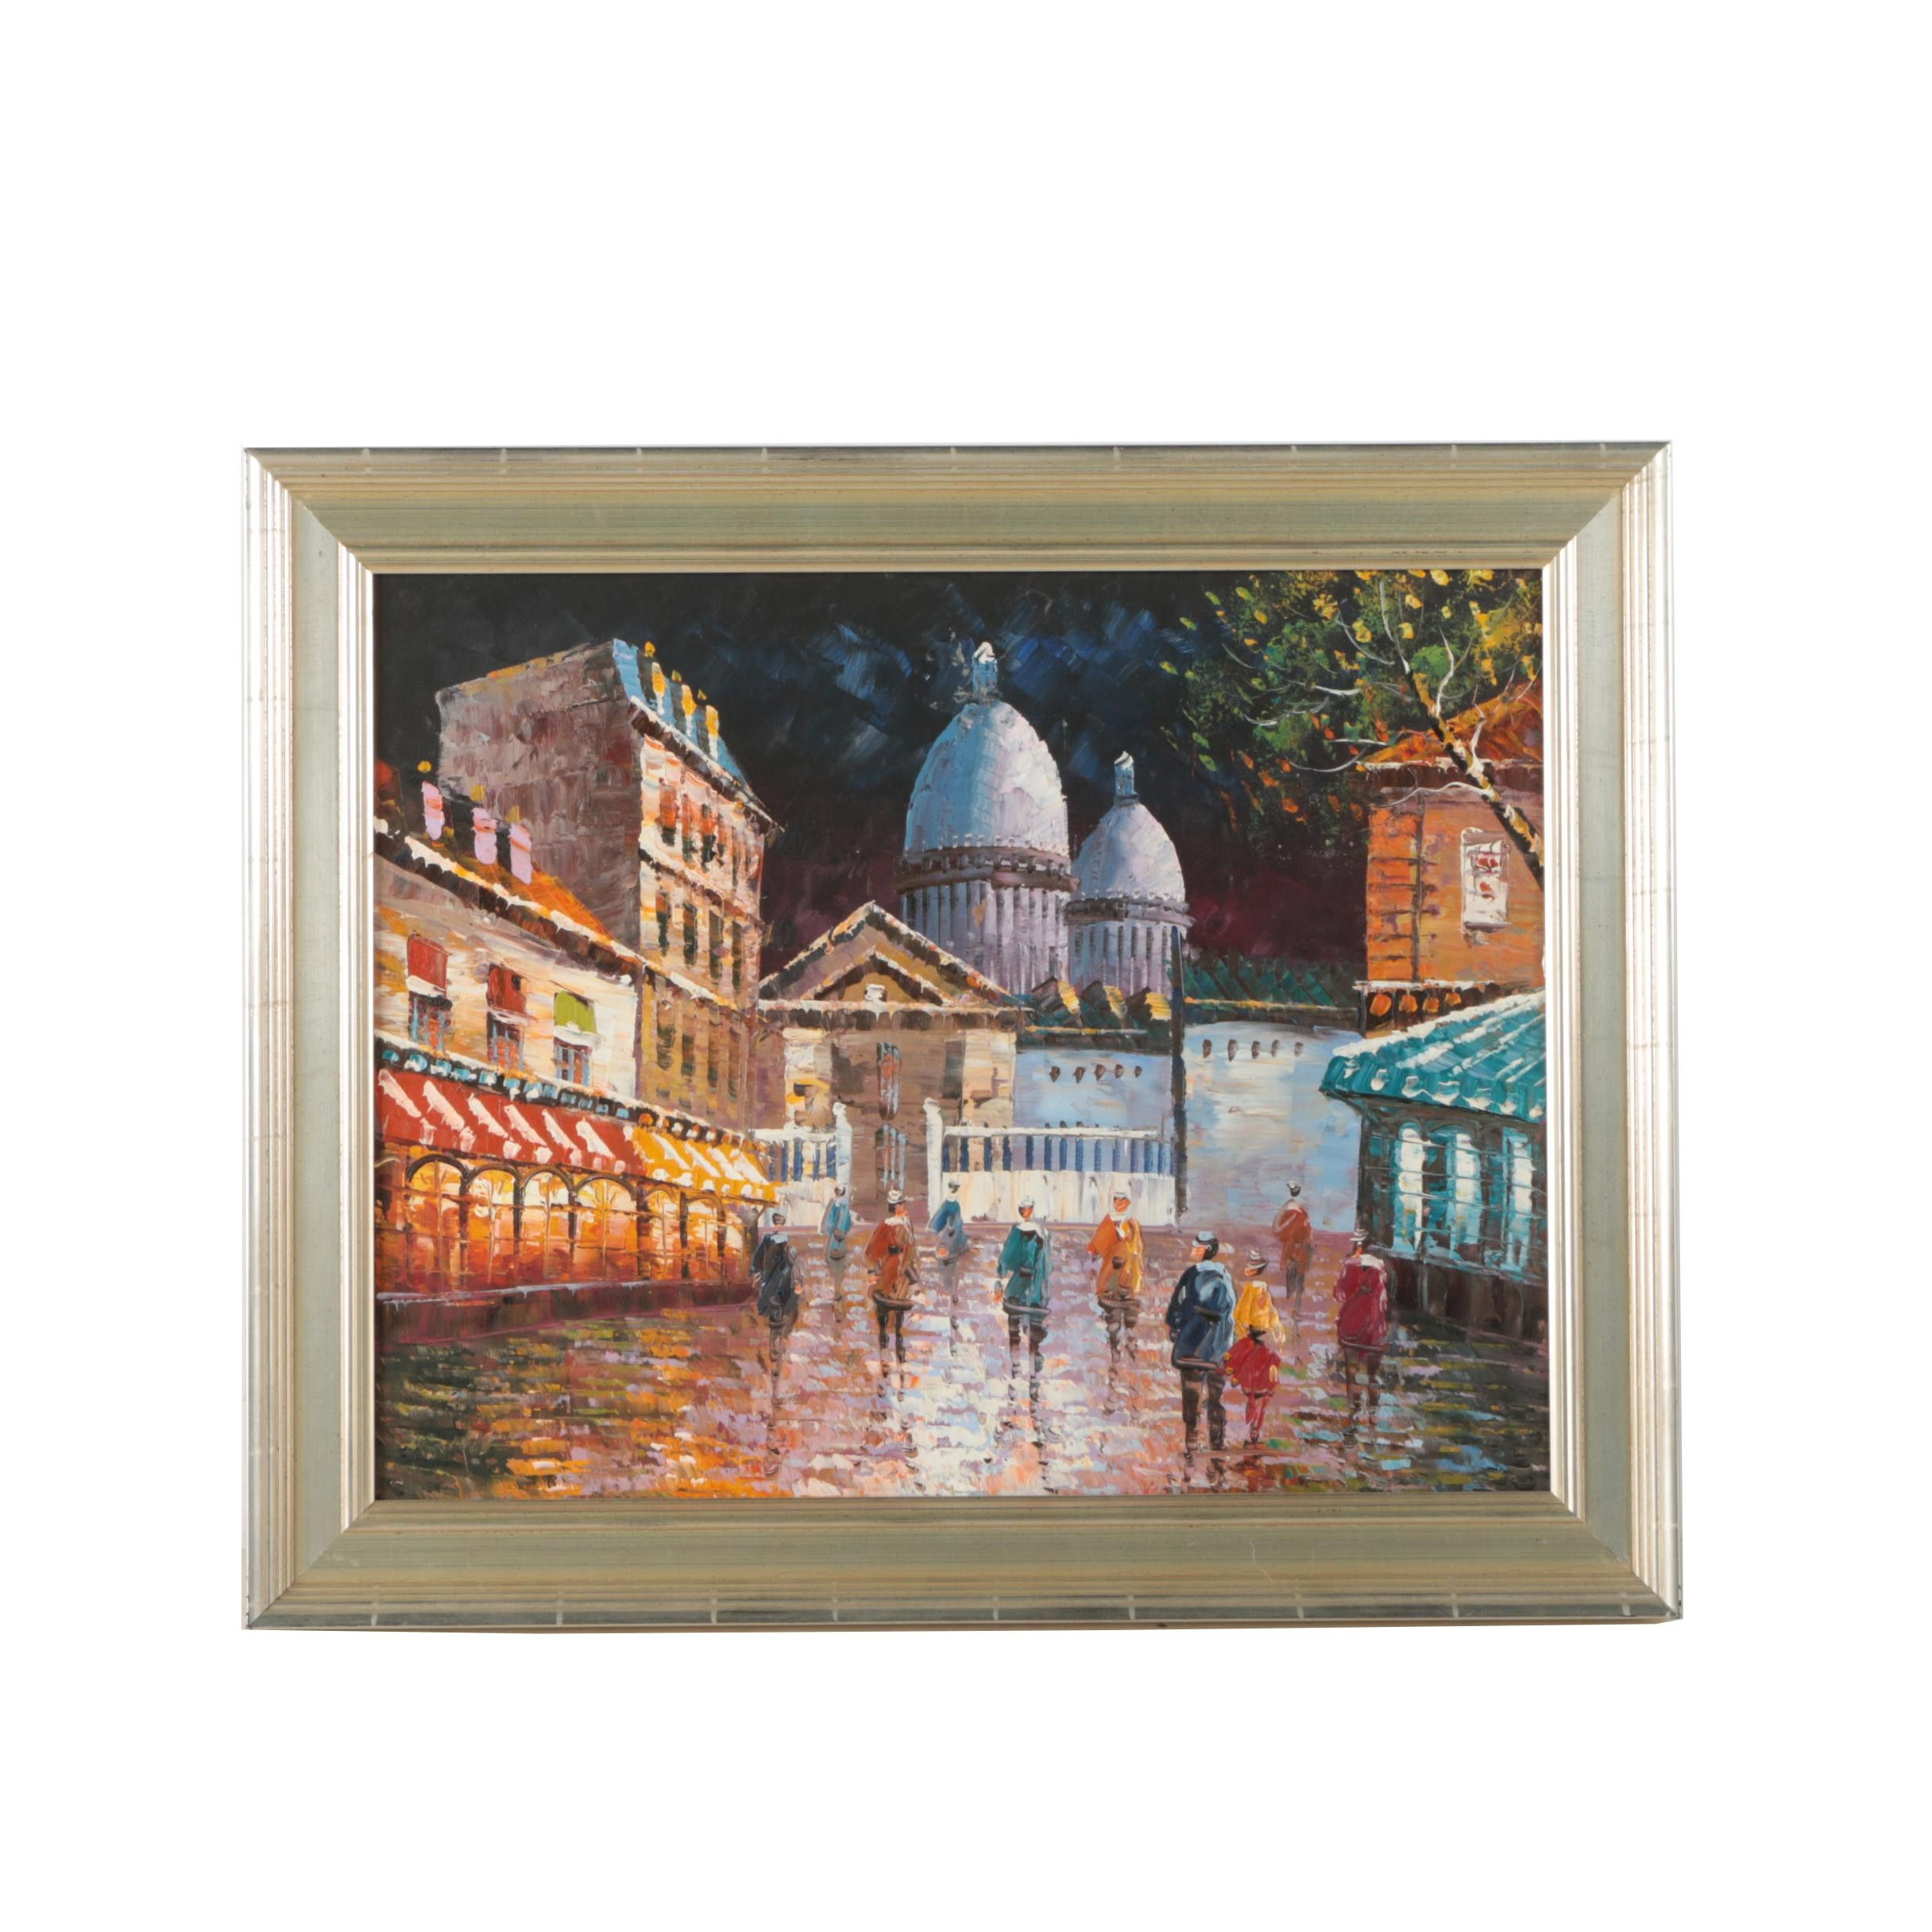 Oil Painting on Canvas of a Parisian City Scene